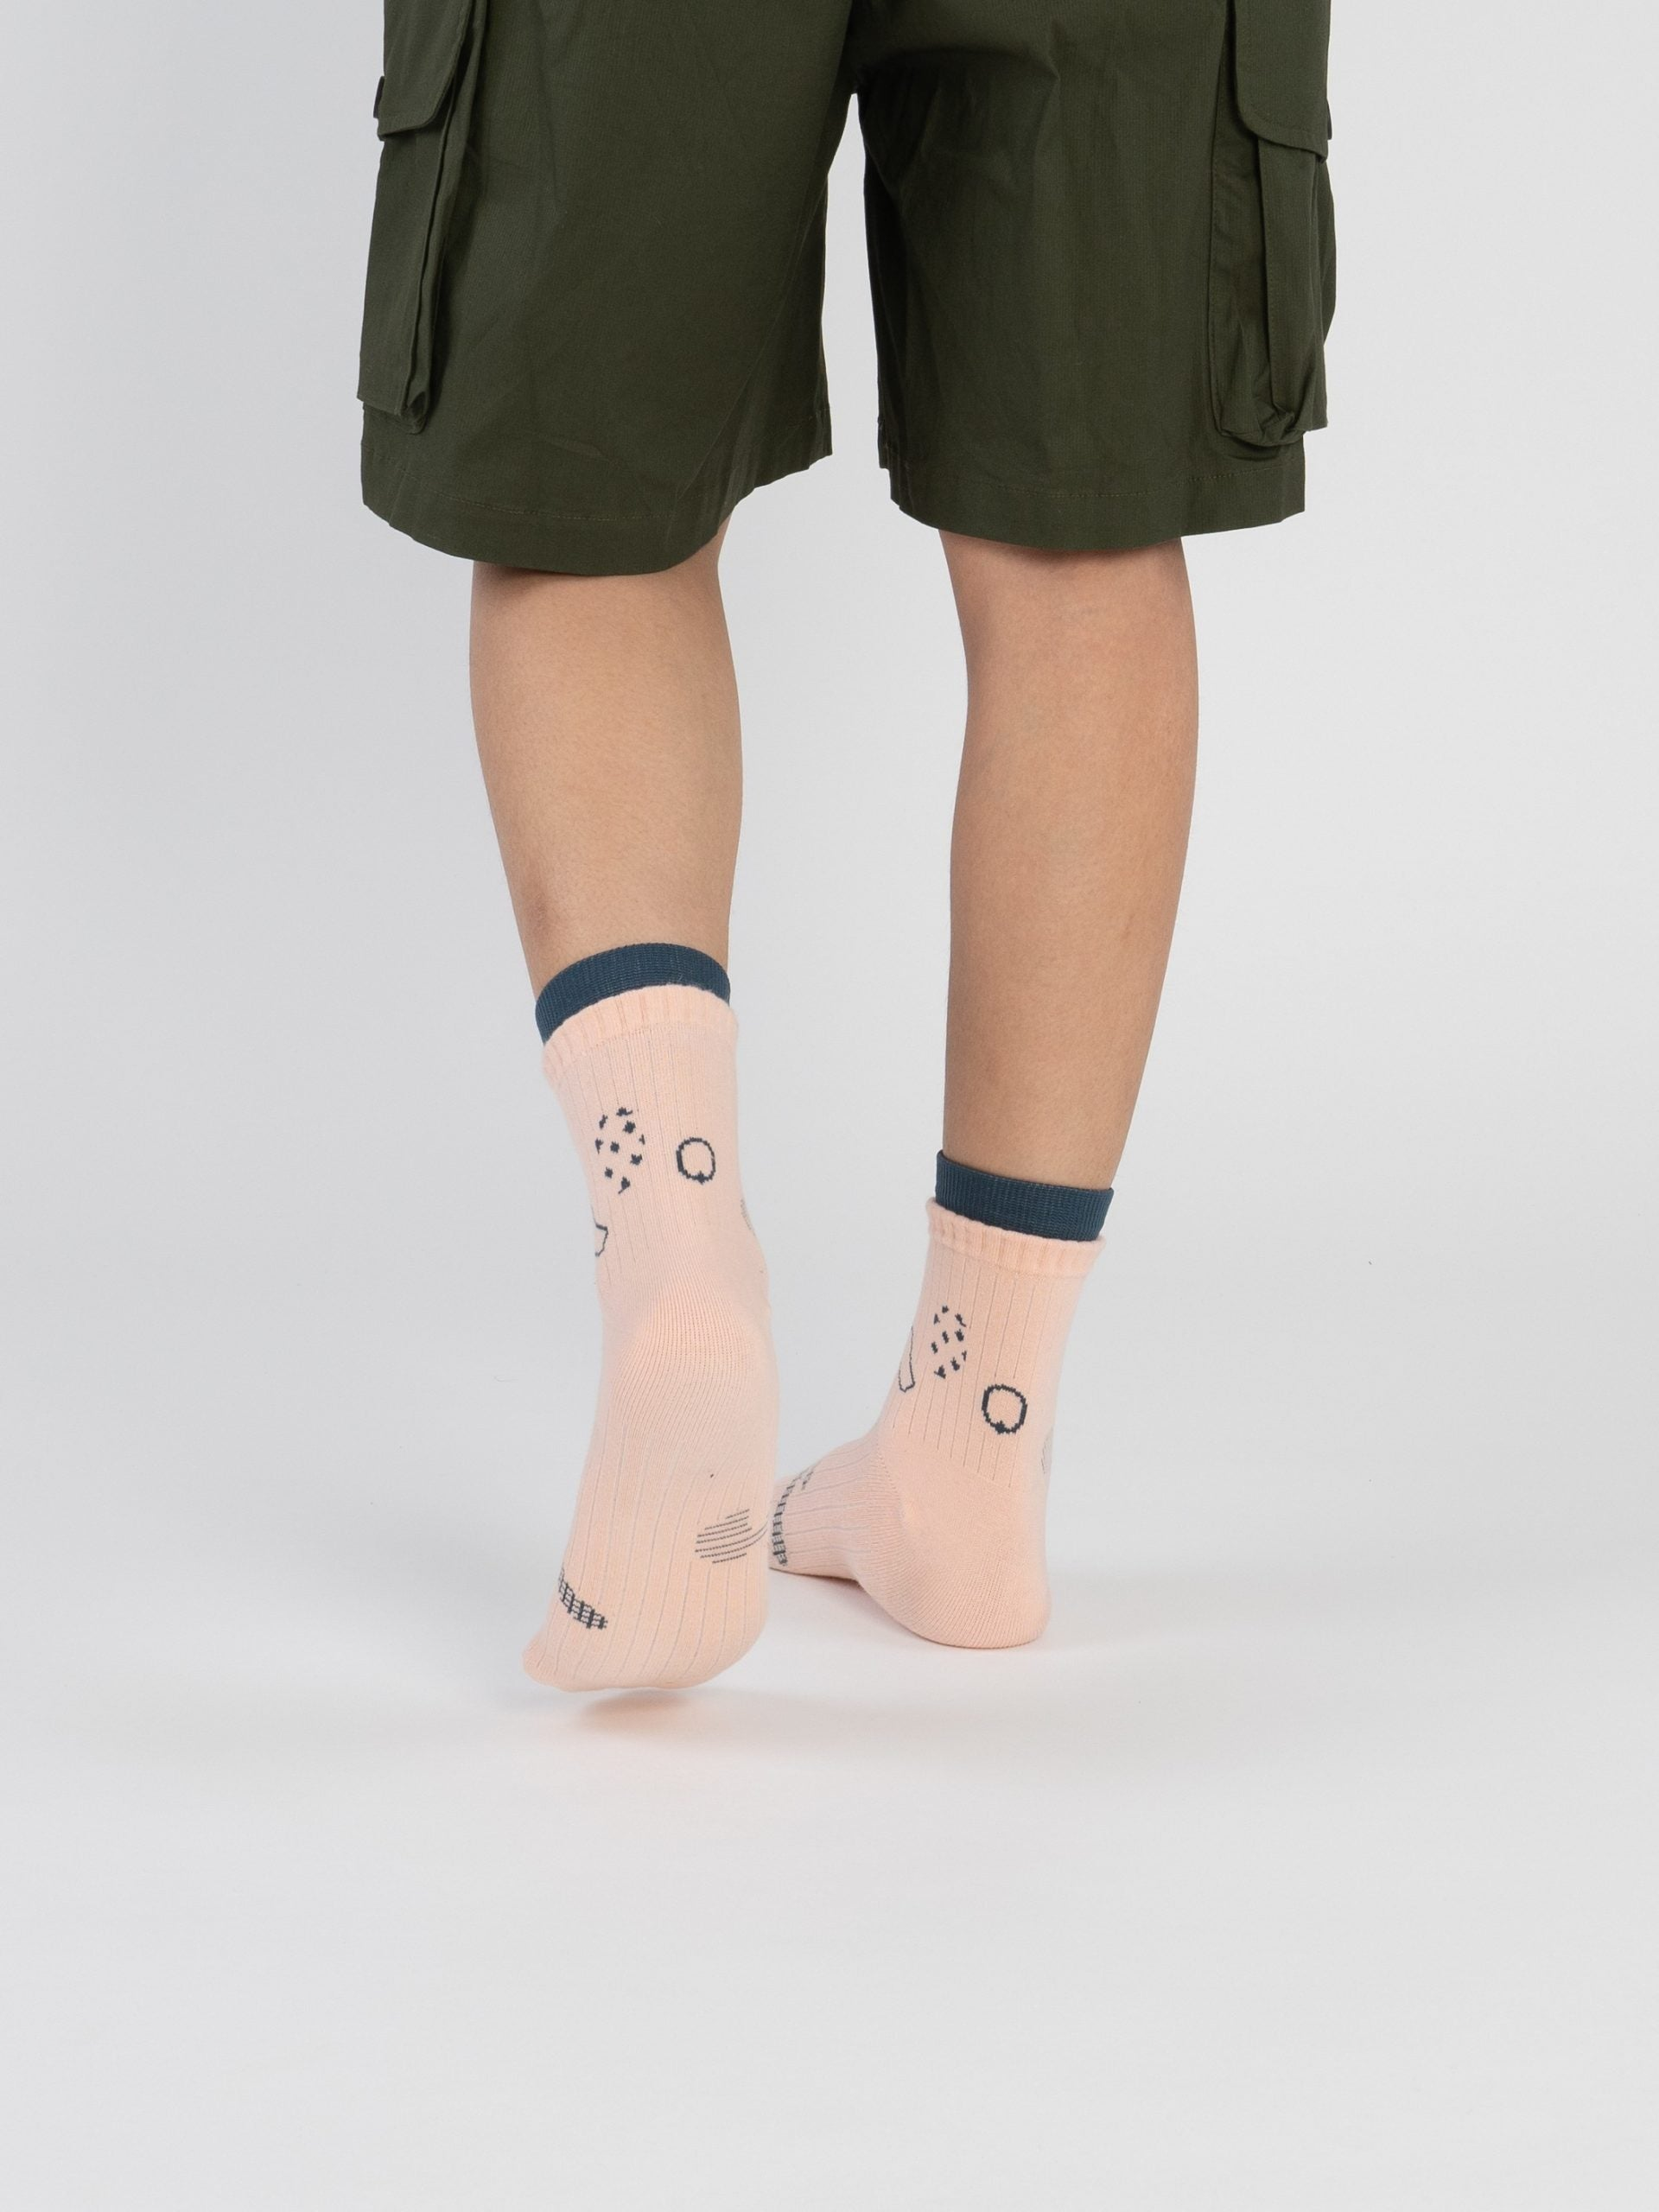 Bumi : Grow - Tropical Peach Socks